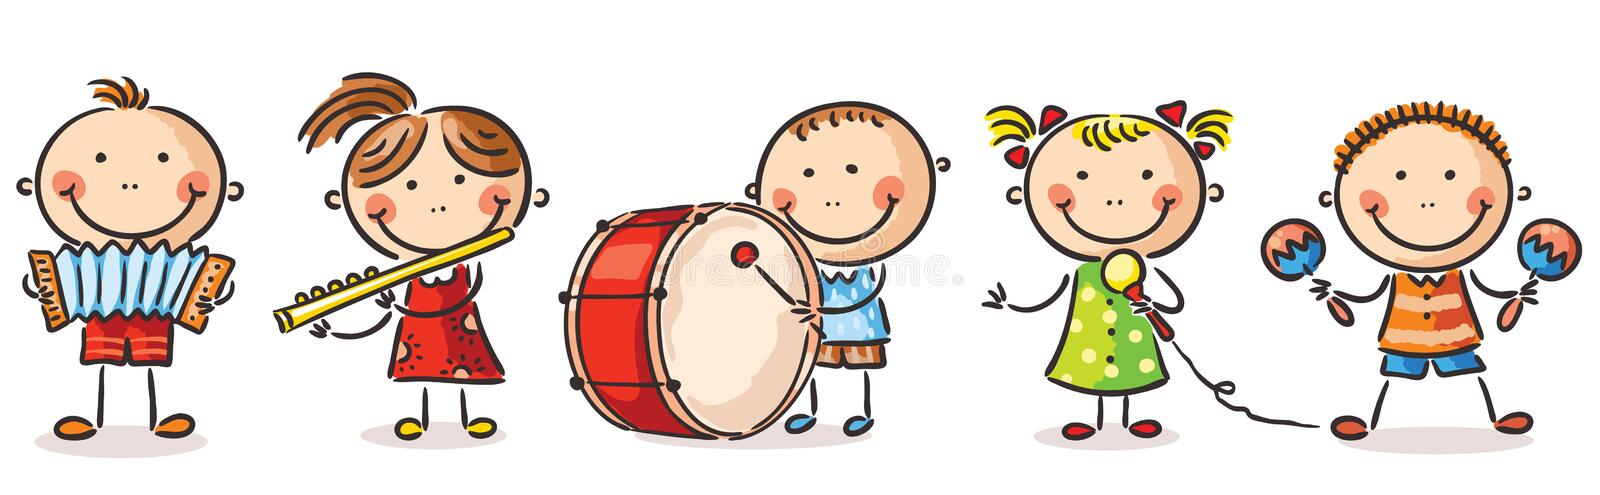 Children playing different musical instruments stock illustration